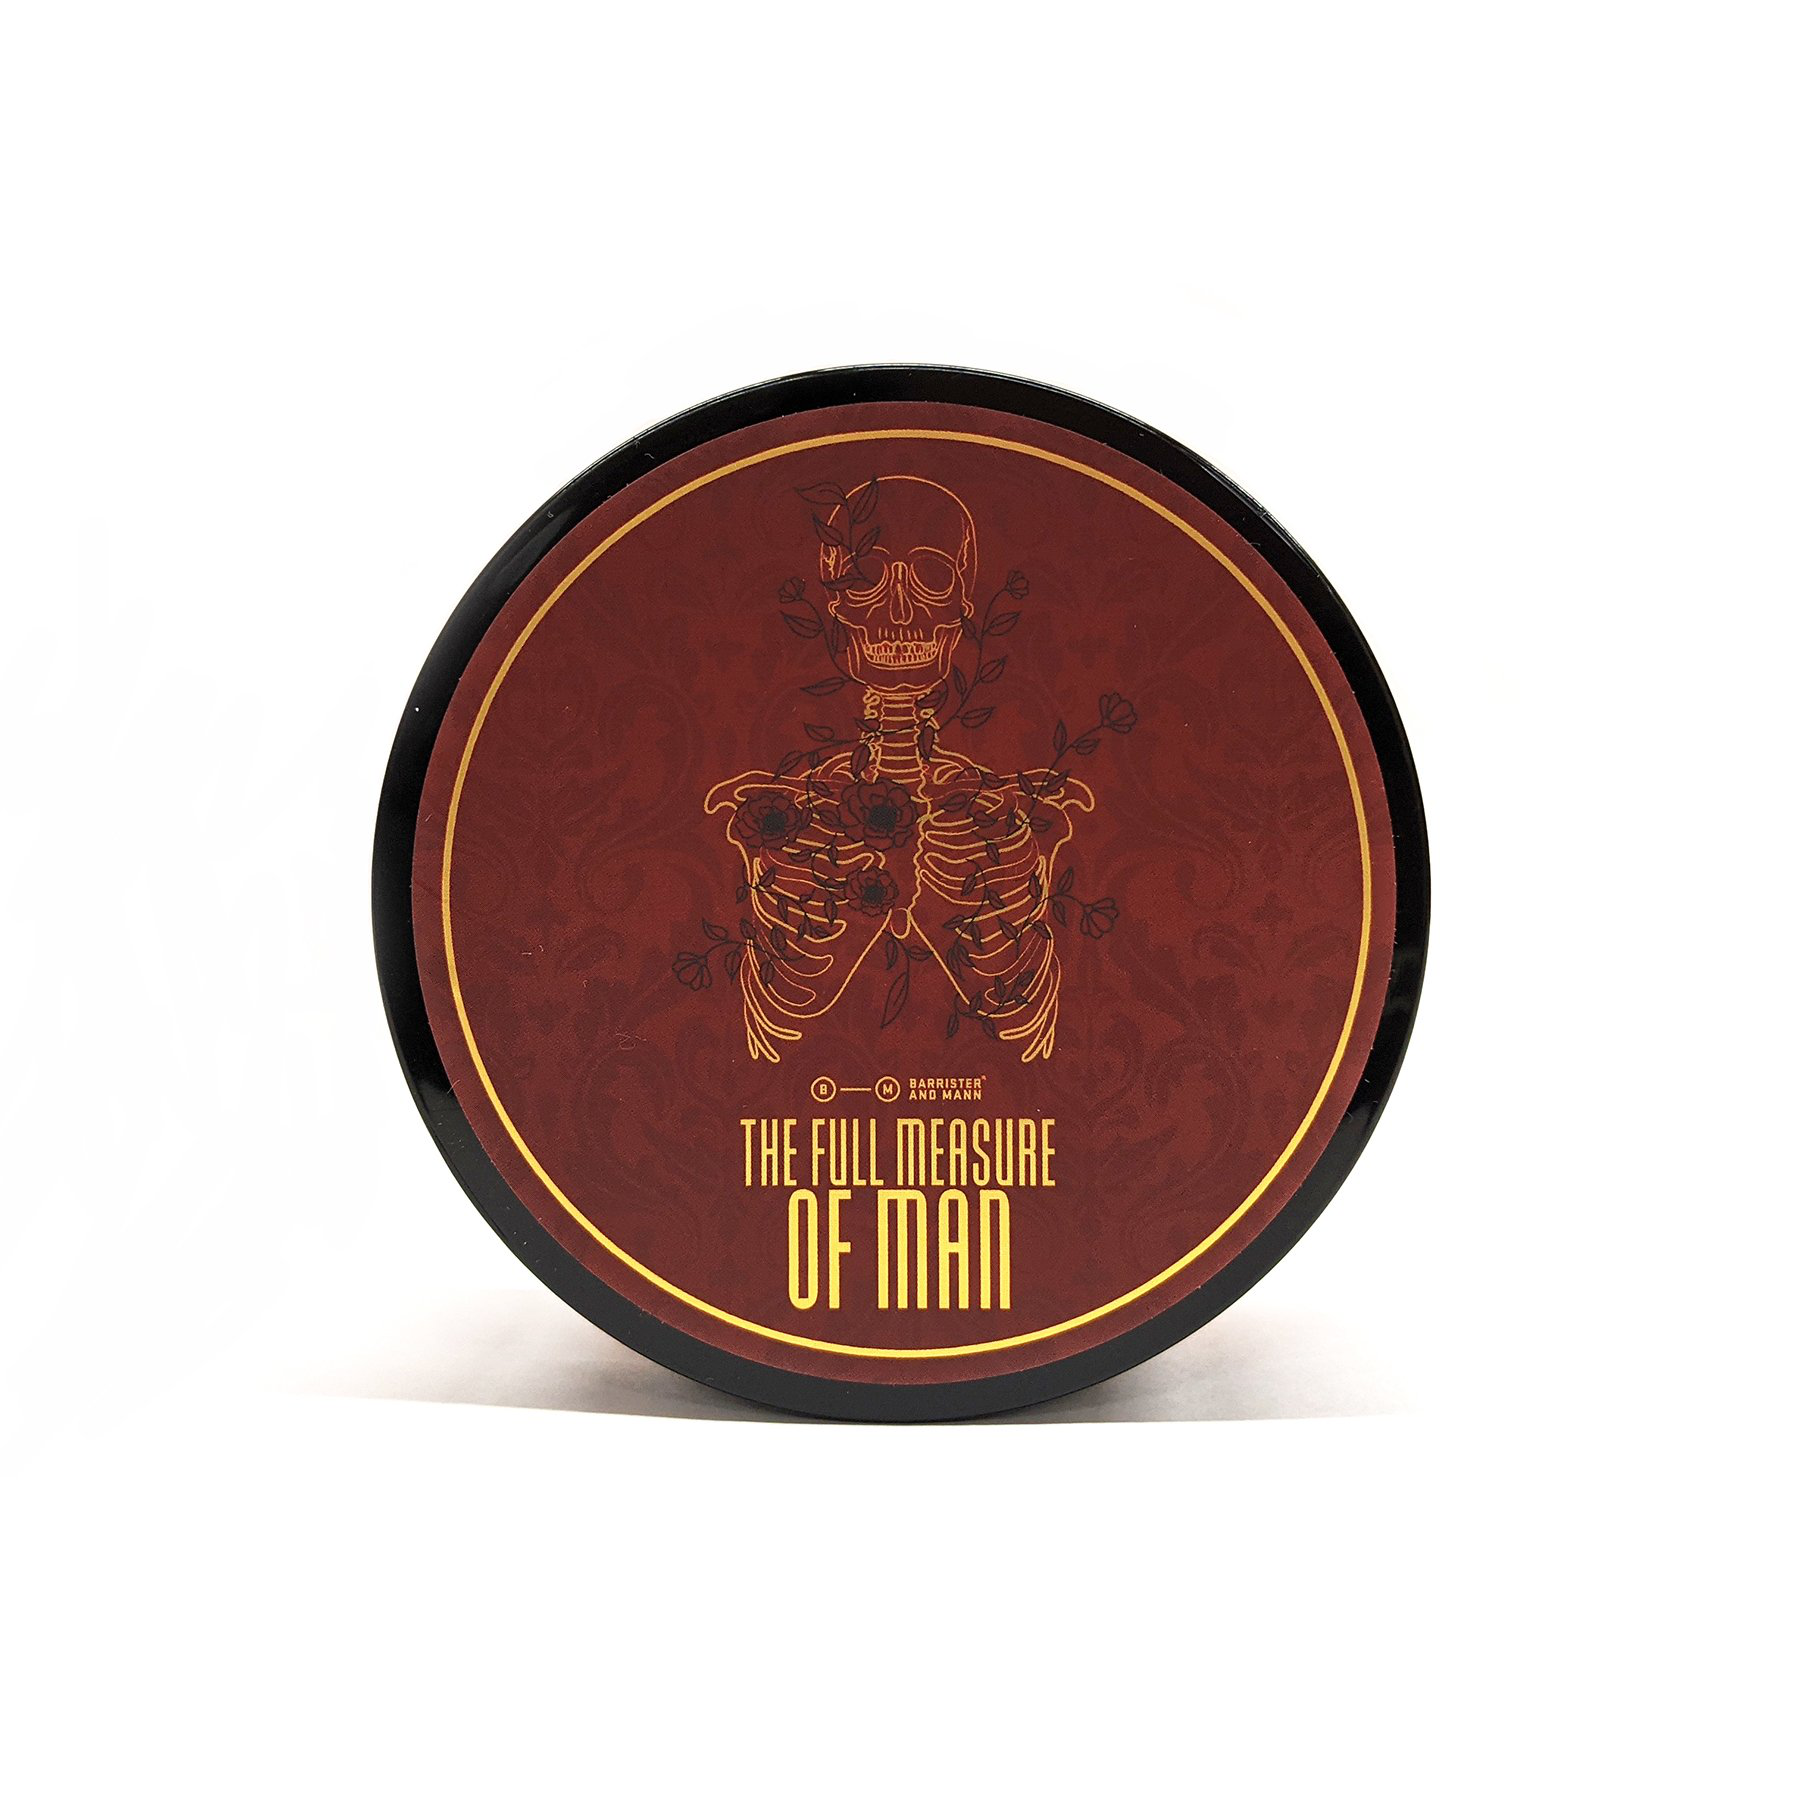 Barrister and Mann - The Full Measure of Man - Soap image